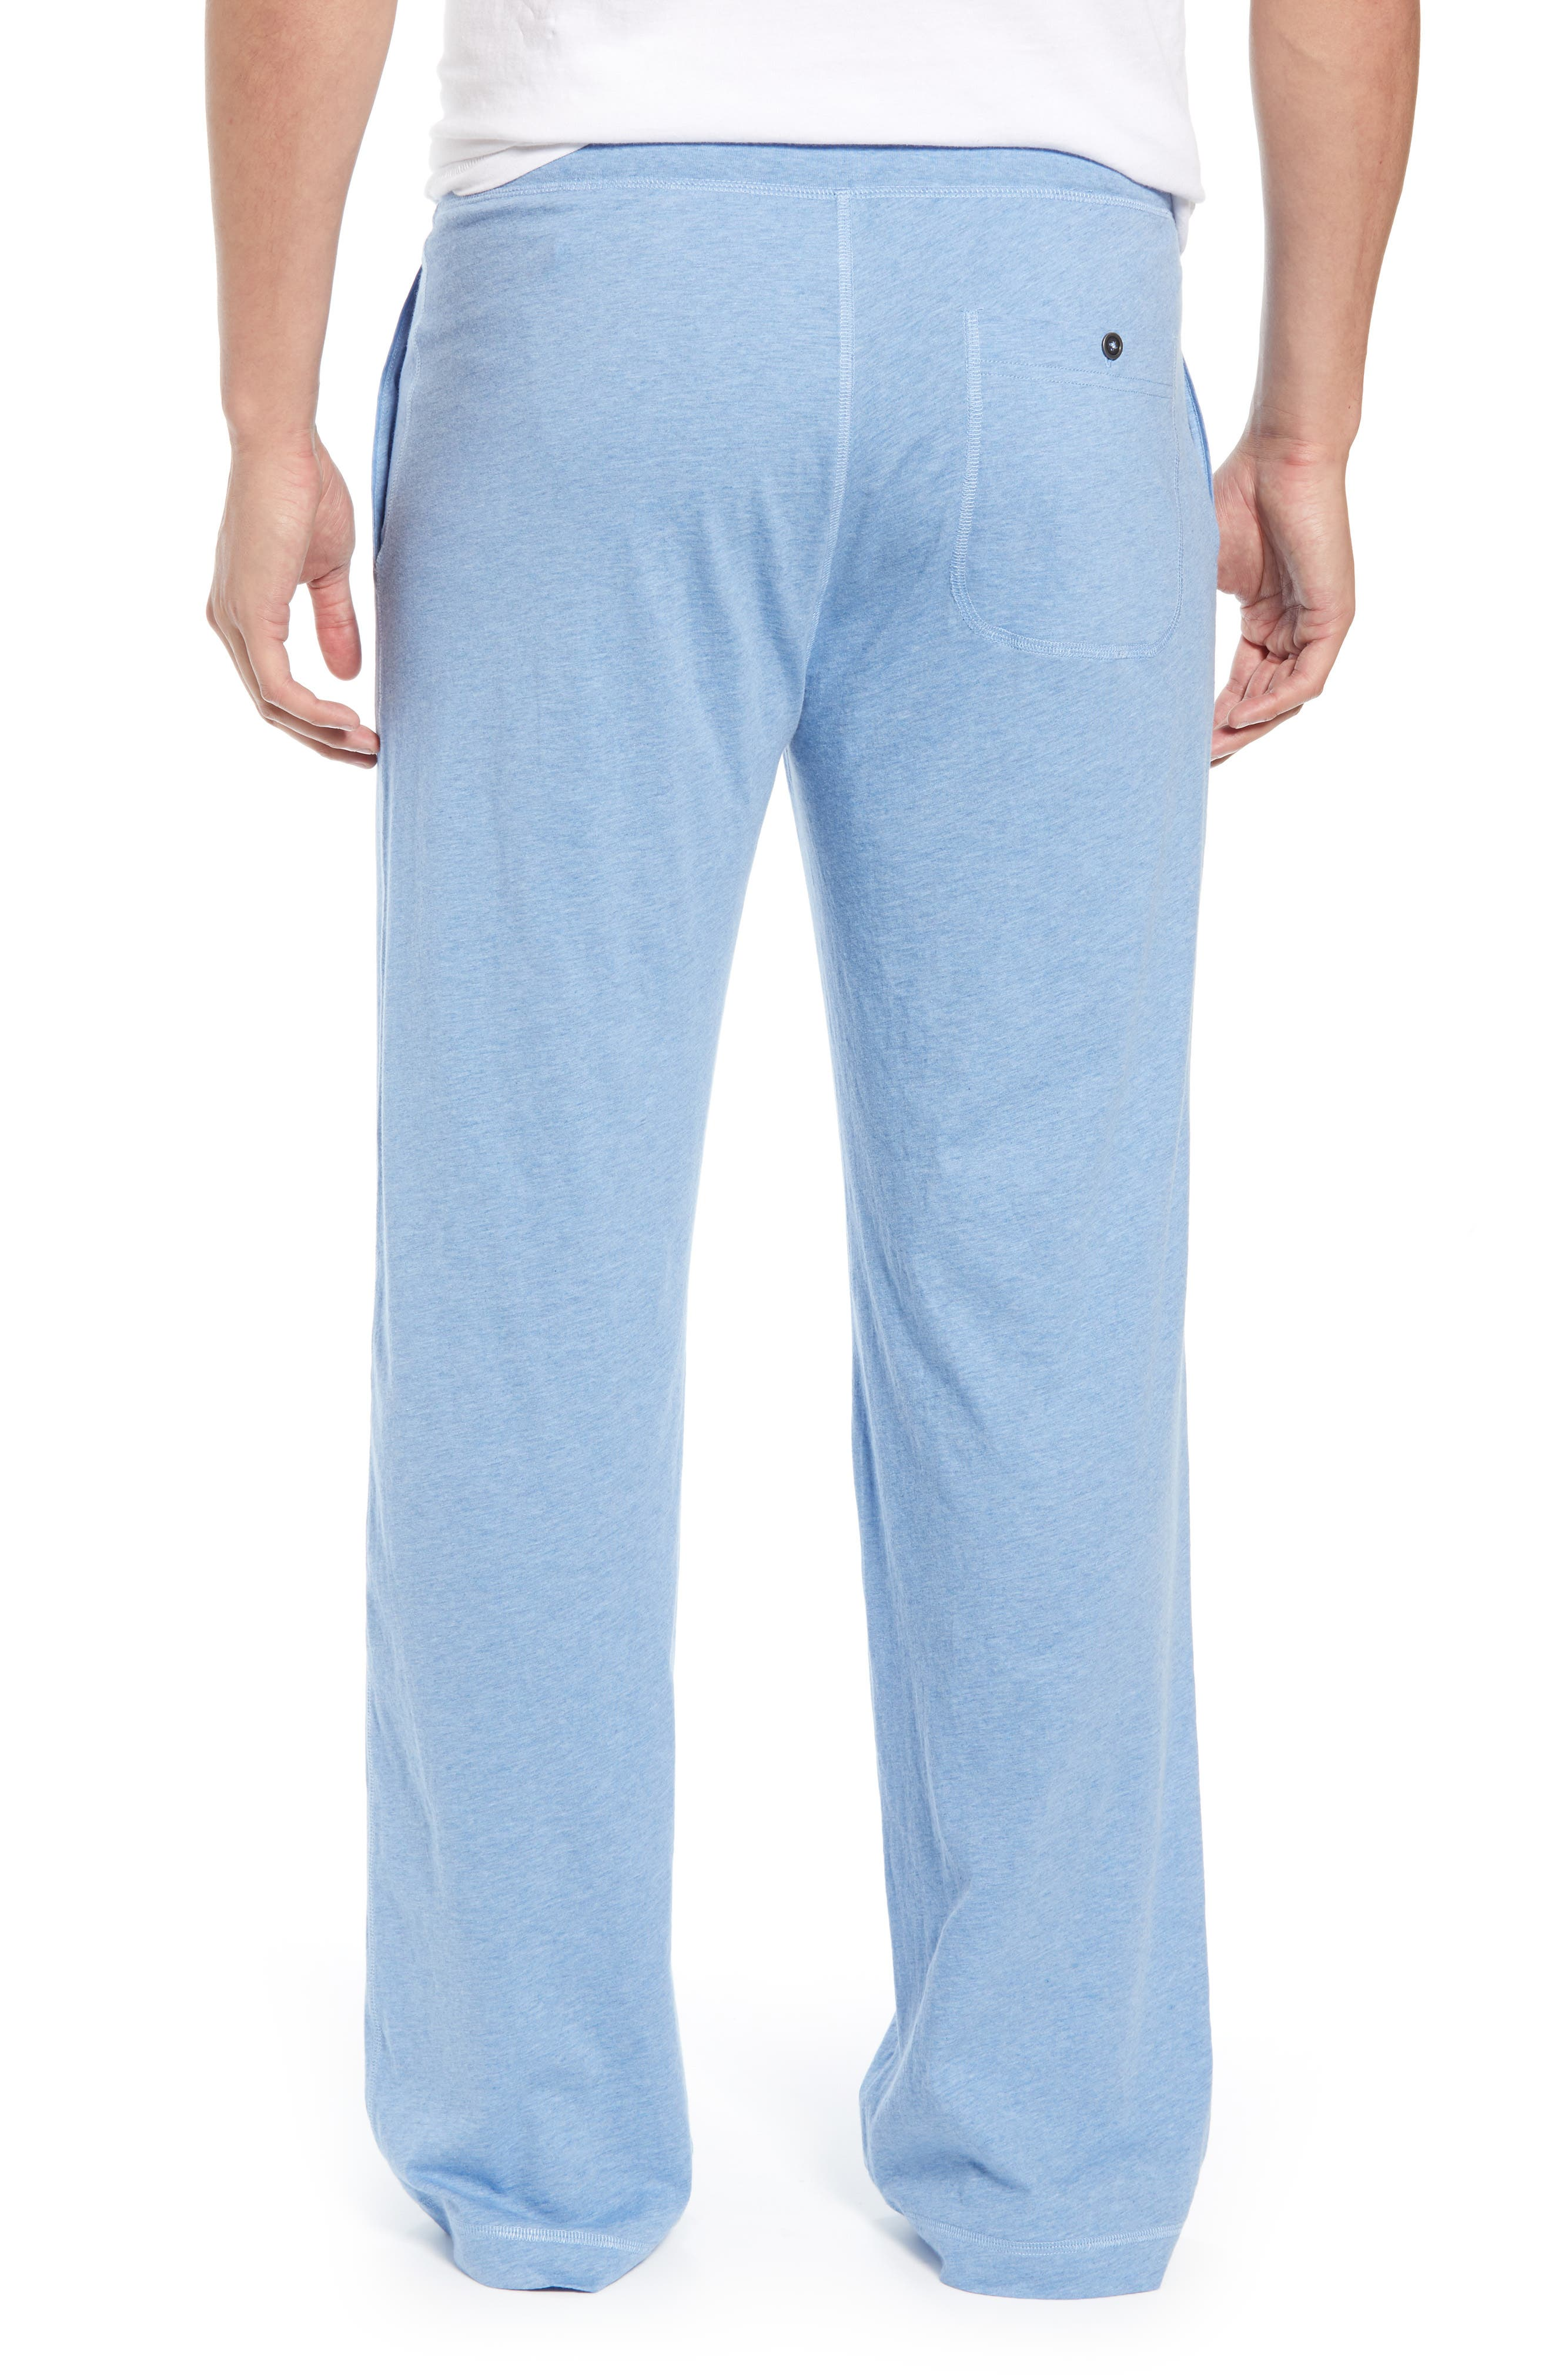 Men's Joggers & Sweatpants | Nordstrom